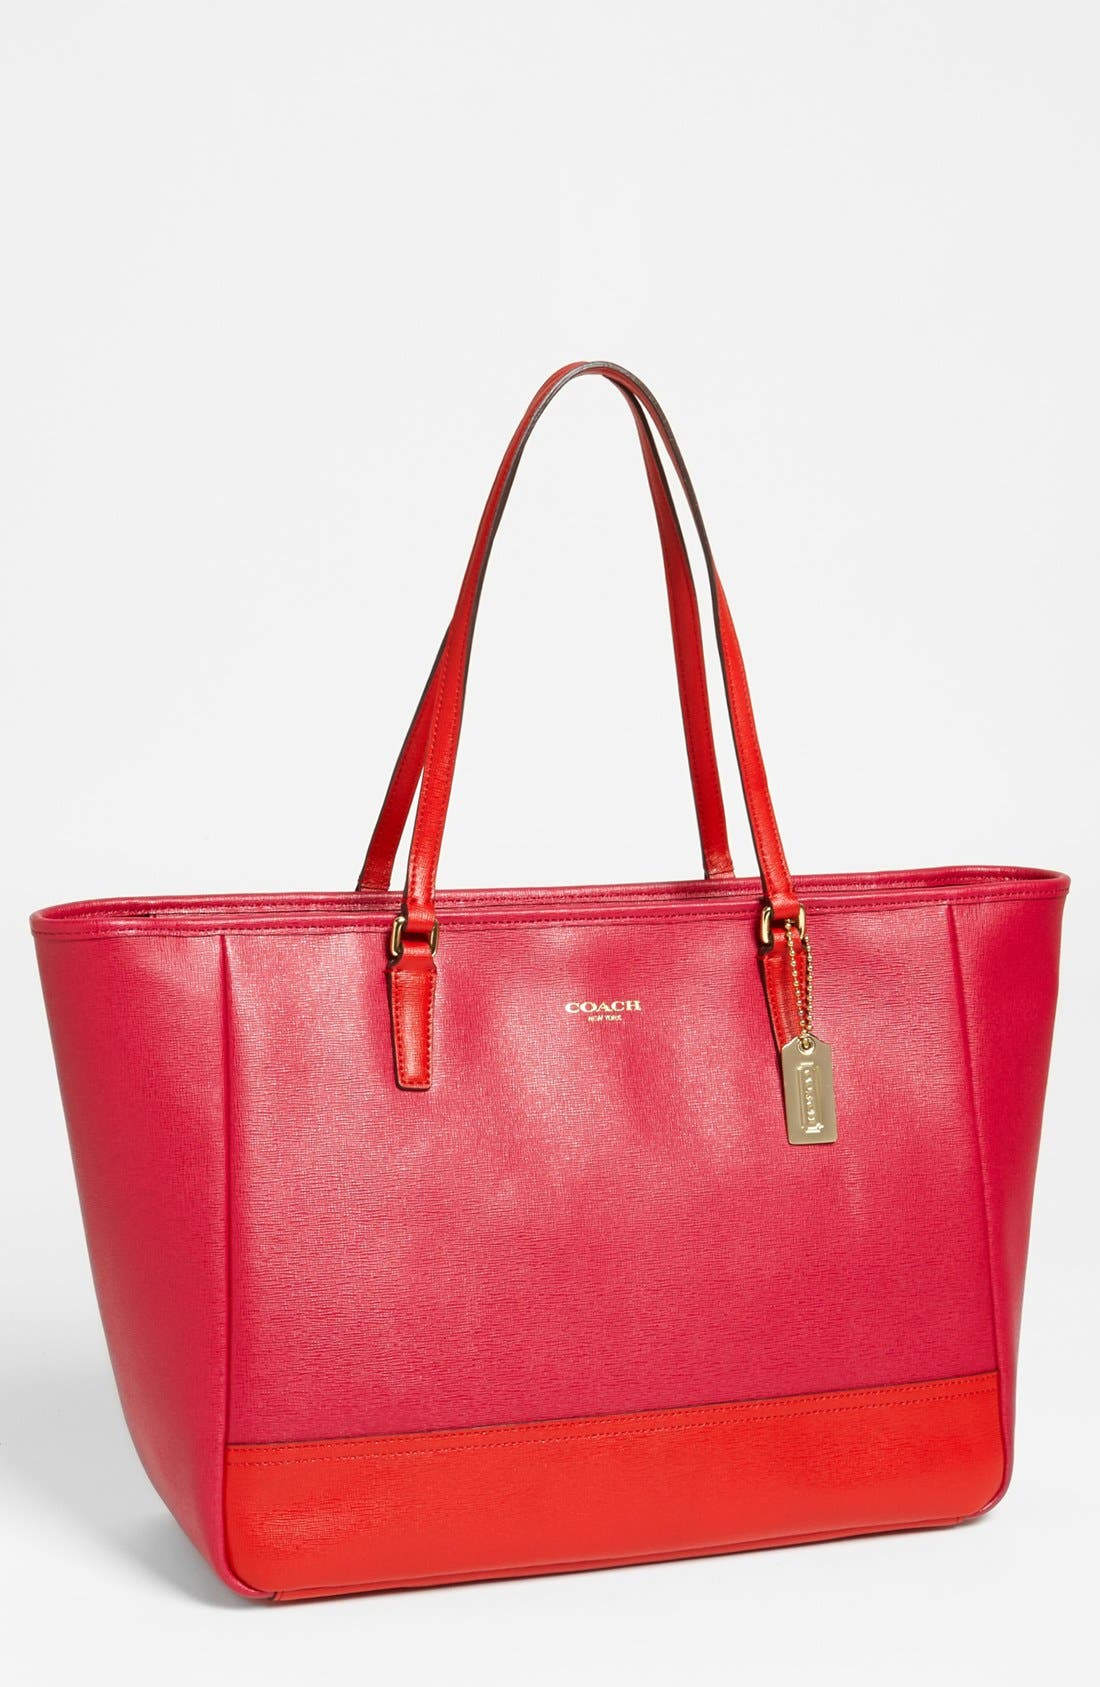 Alternate Image 1 Selected - COACH 'Colorblock - Medium' Leather Tote